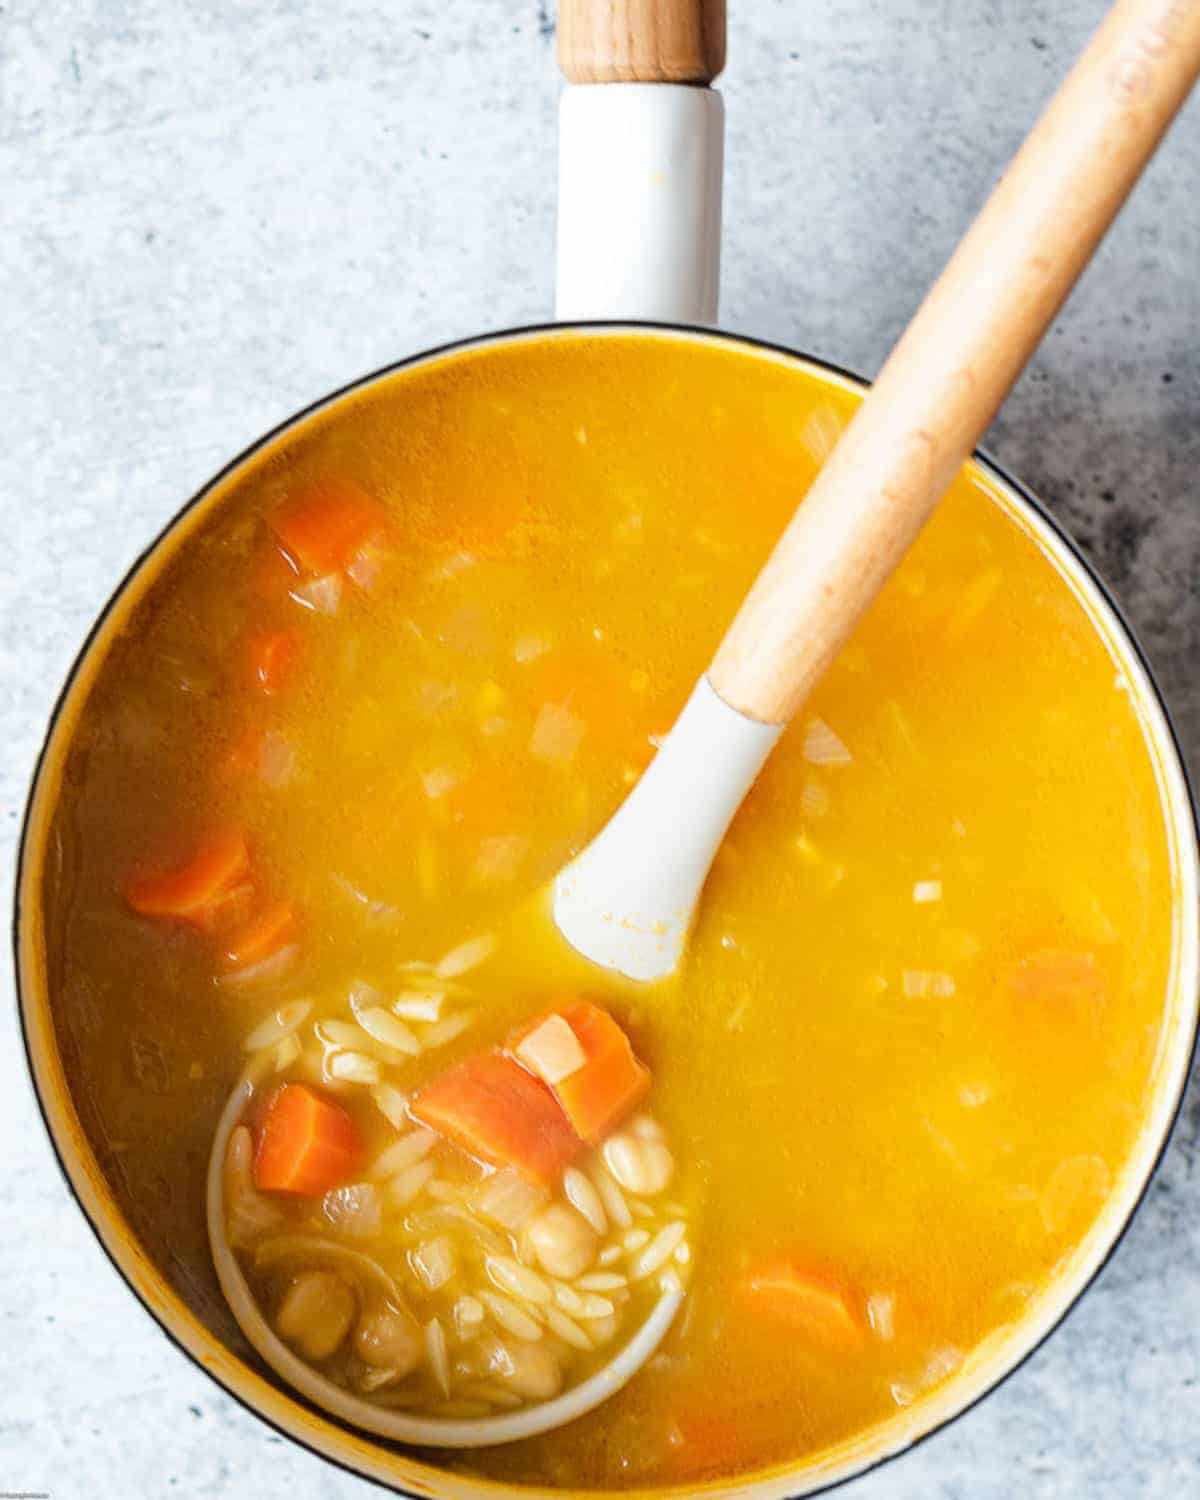 Saucepan chickpea miso soup with orzo, carrots, and onions in a golden vegetable broth.